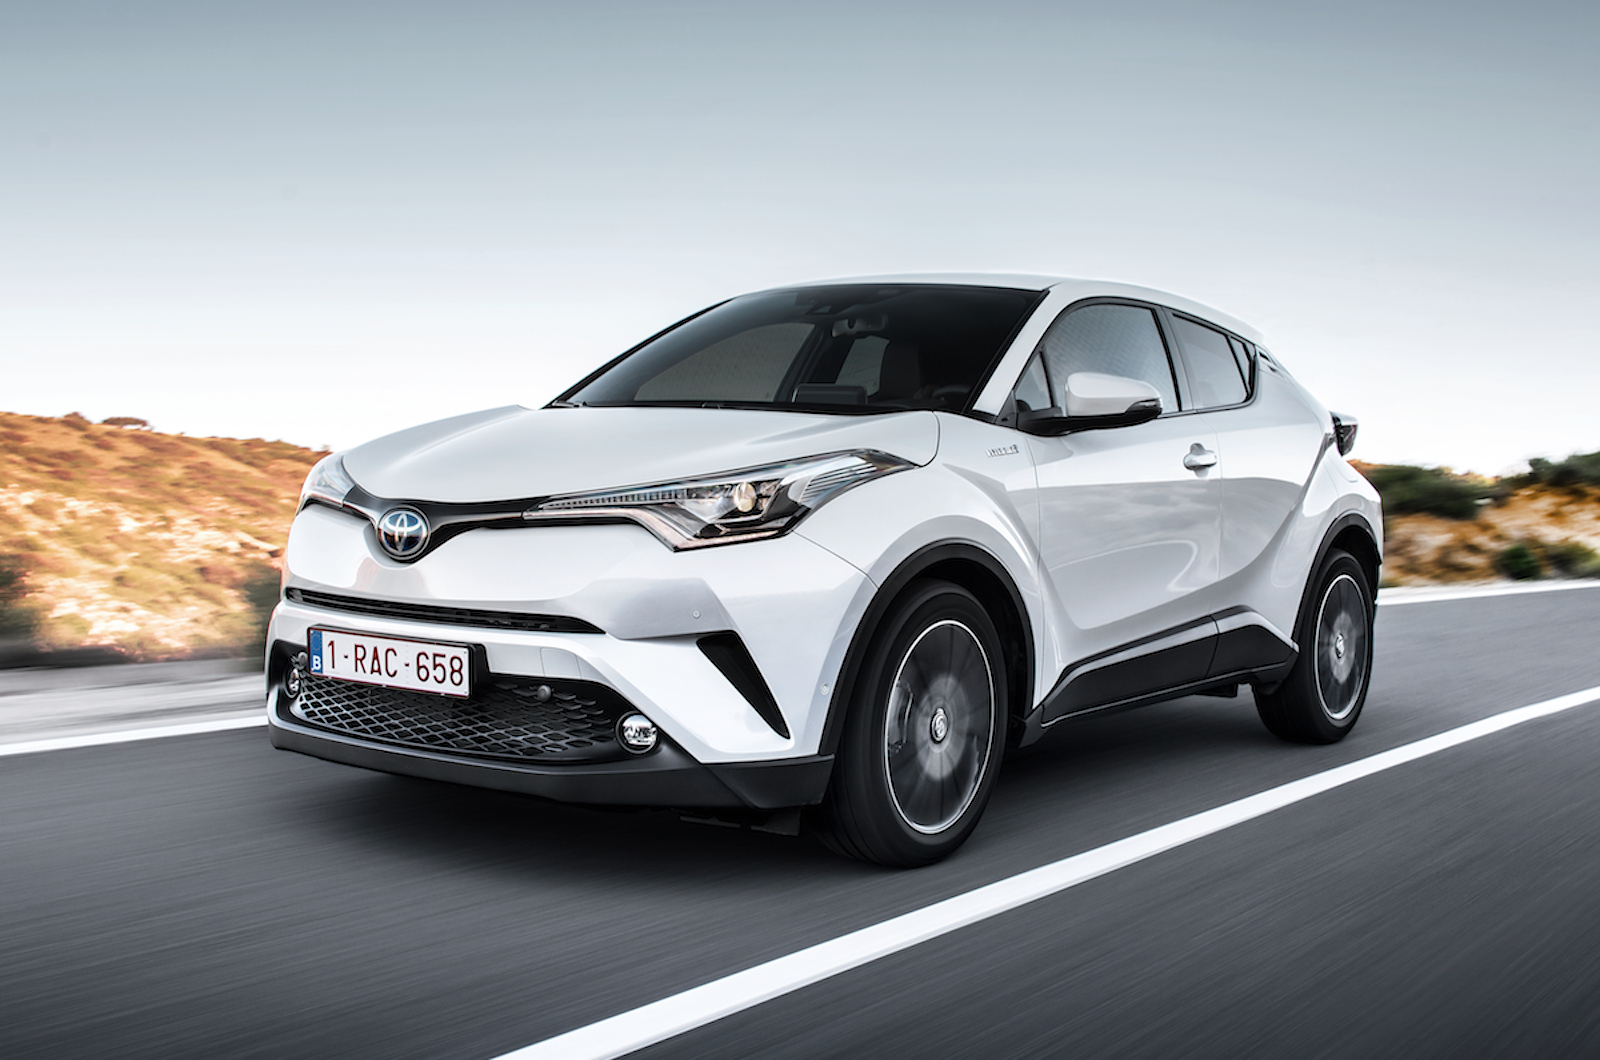 Car seating capacity compact crossover cars toyota cars toyota chr - Car Seating Capacity Compact Crossover Cars Toyota Cars Toyota Chr 26